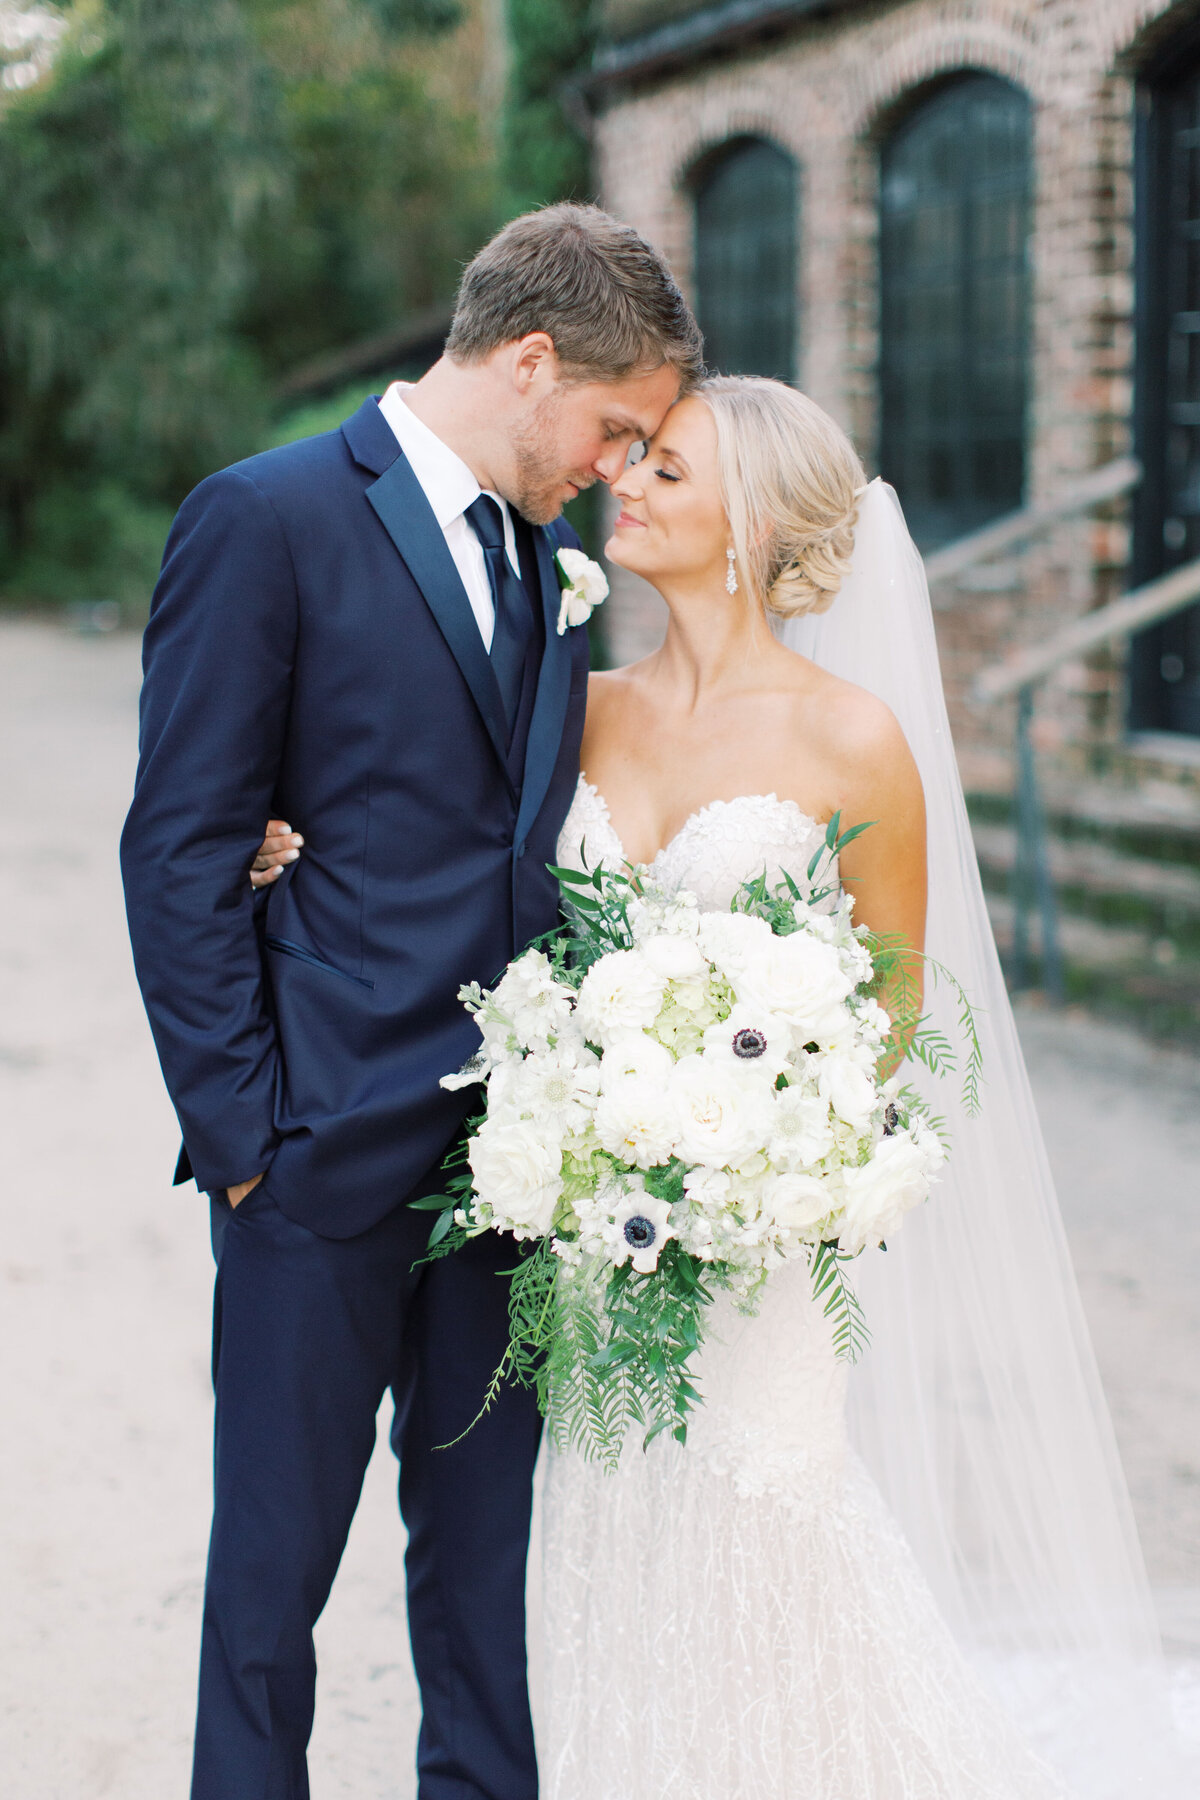 Melton_Wedding__Middleton_Place_Plantation_Charleston_South_Carolina_Jacksonville_Florida_Devon_Donnahoo_Photography__0799